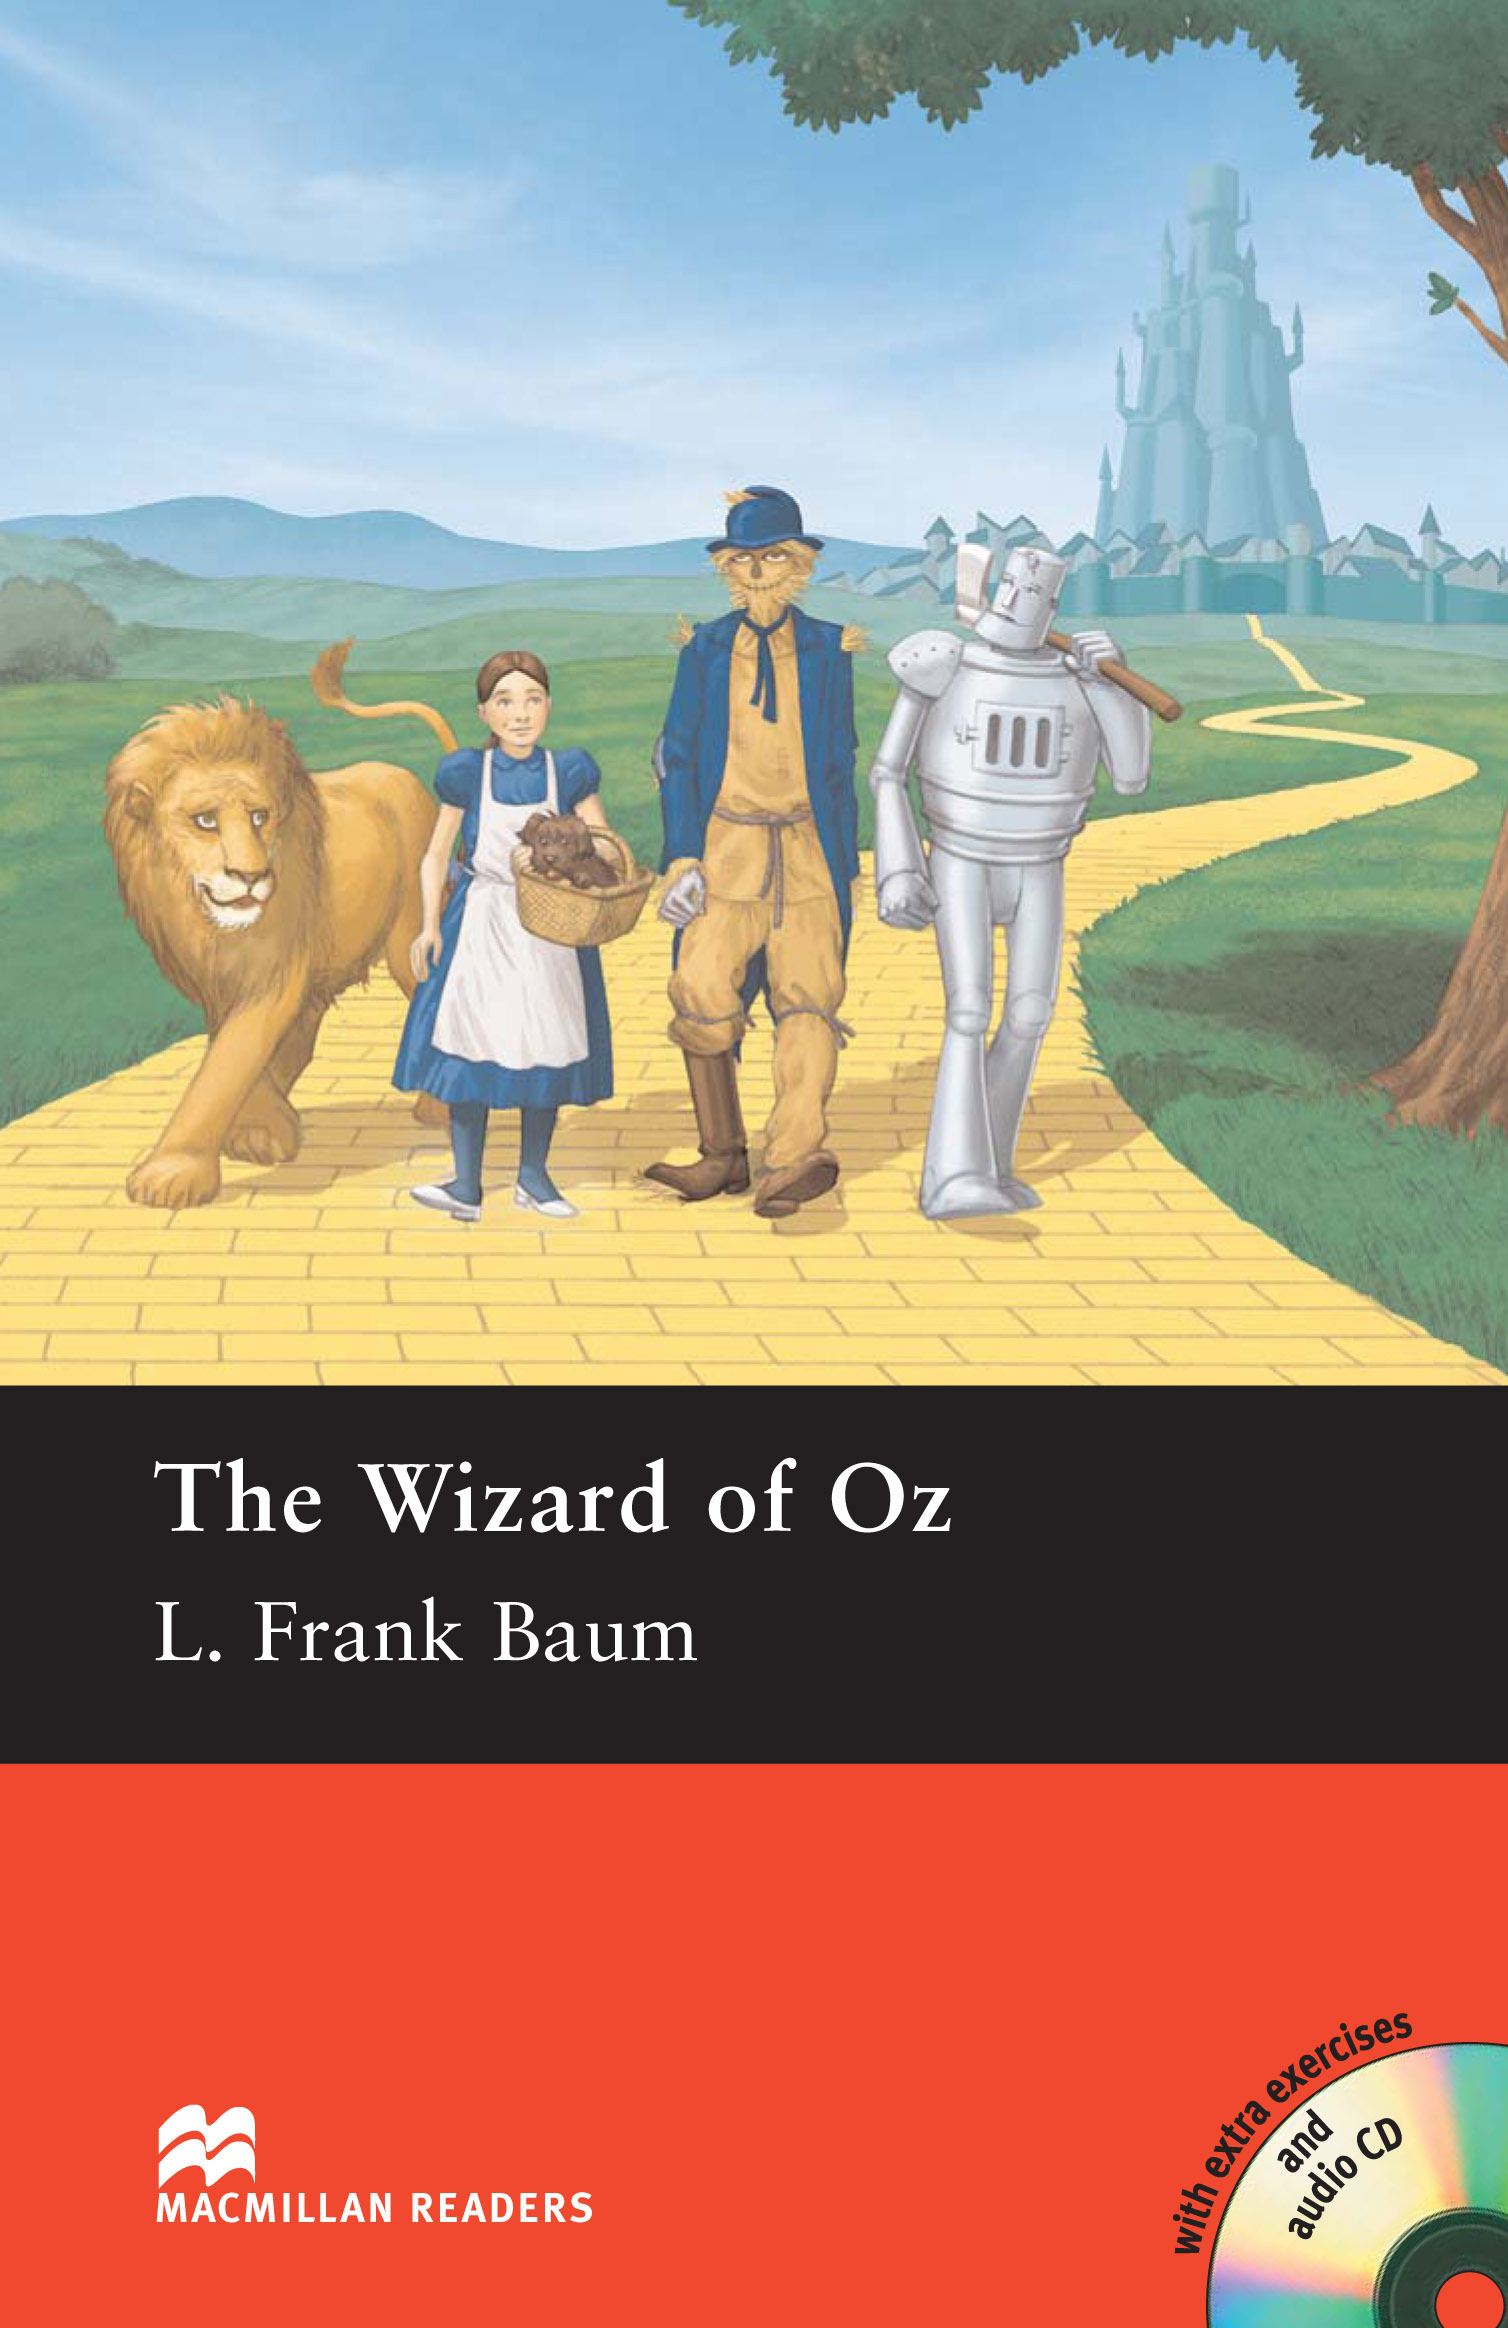 Macmillan Readers: The Wizard of Oz Pack